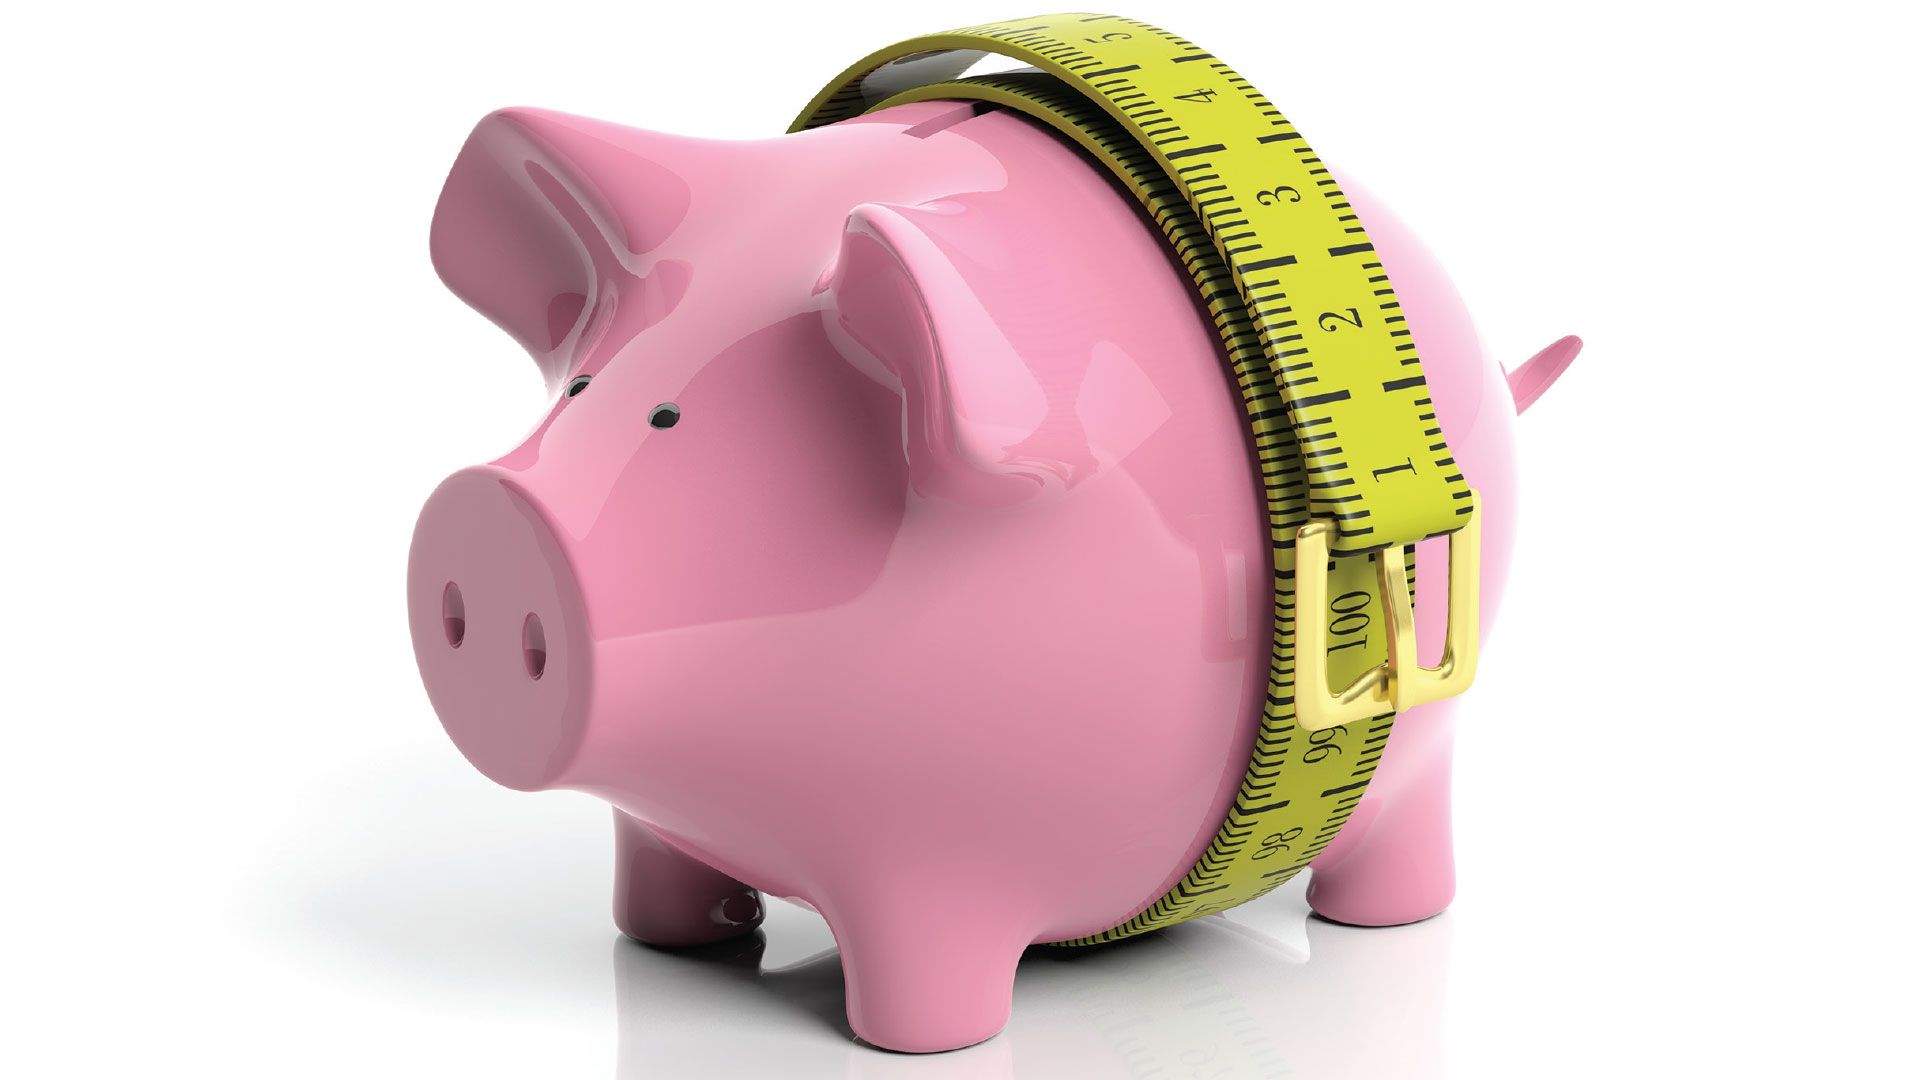 Piggy bank with a tape measure tightened around its belly.